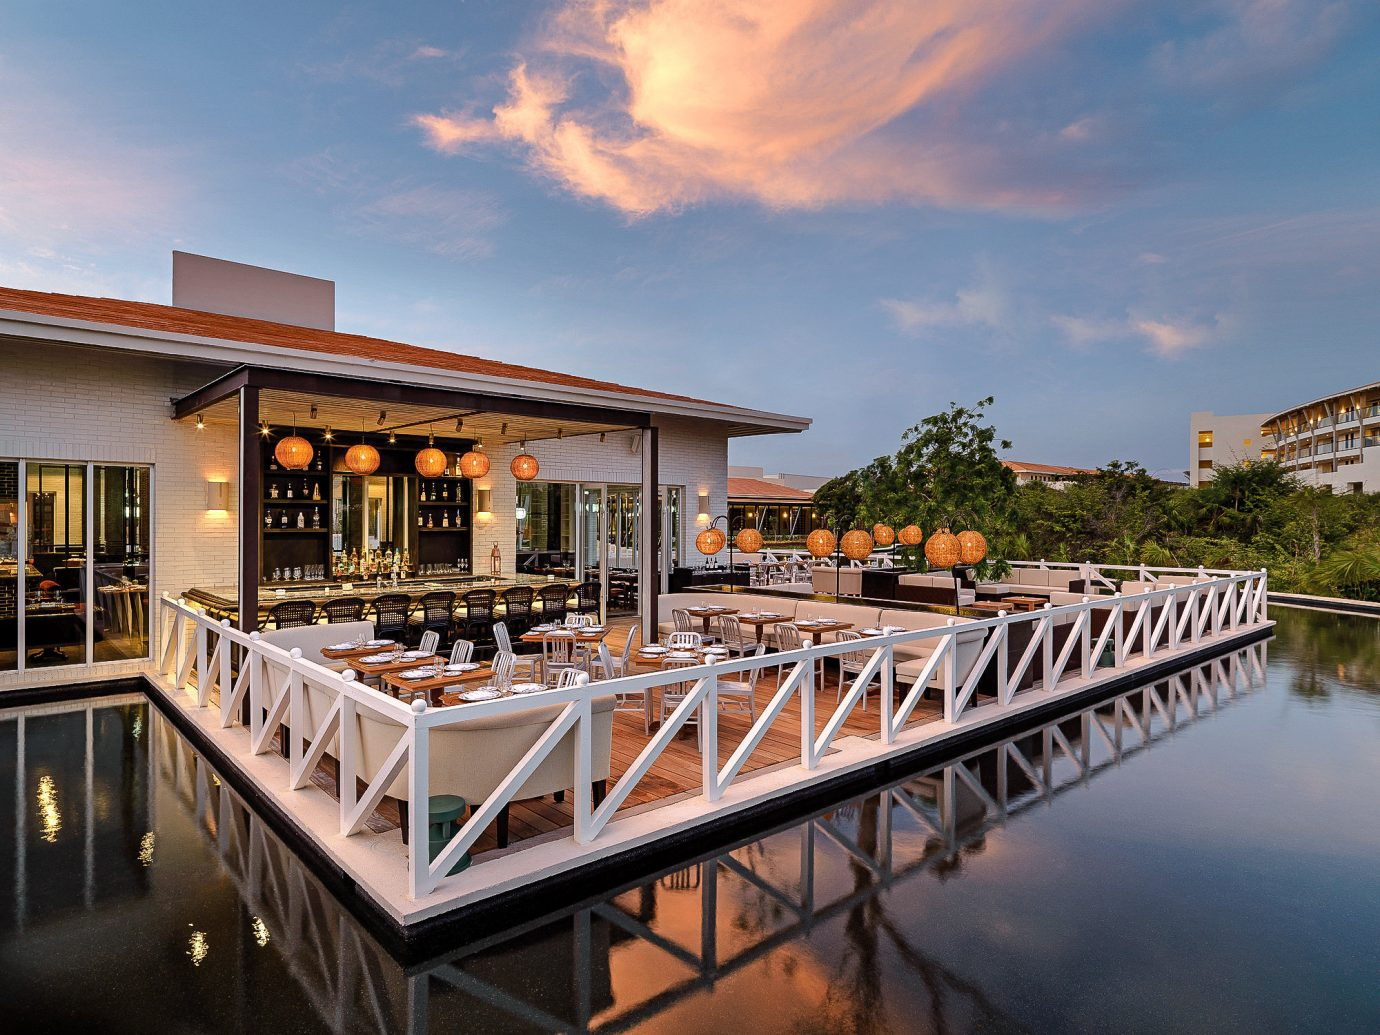 Boutique Hotels Hotels Luxury Travel sky outdoor water reflection scene pier real estate Resort home dock leisure evening estate marina